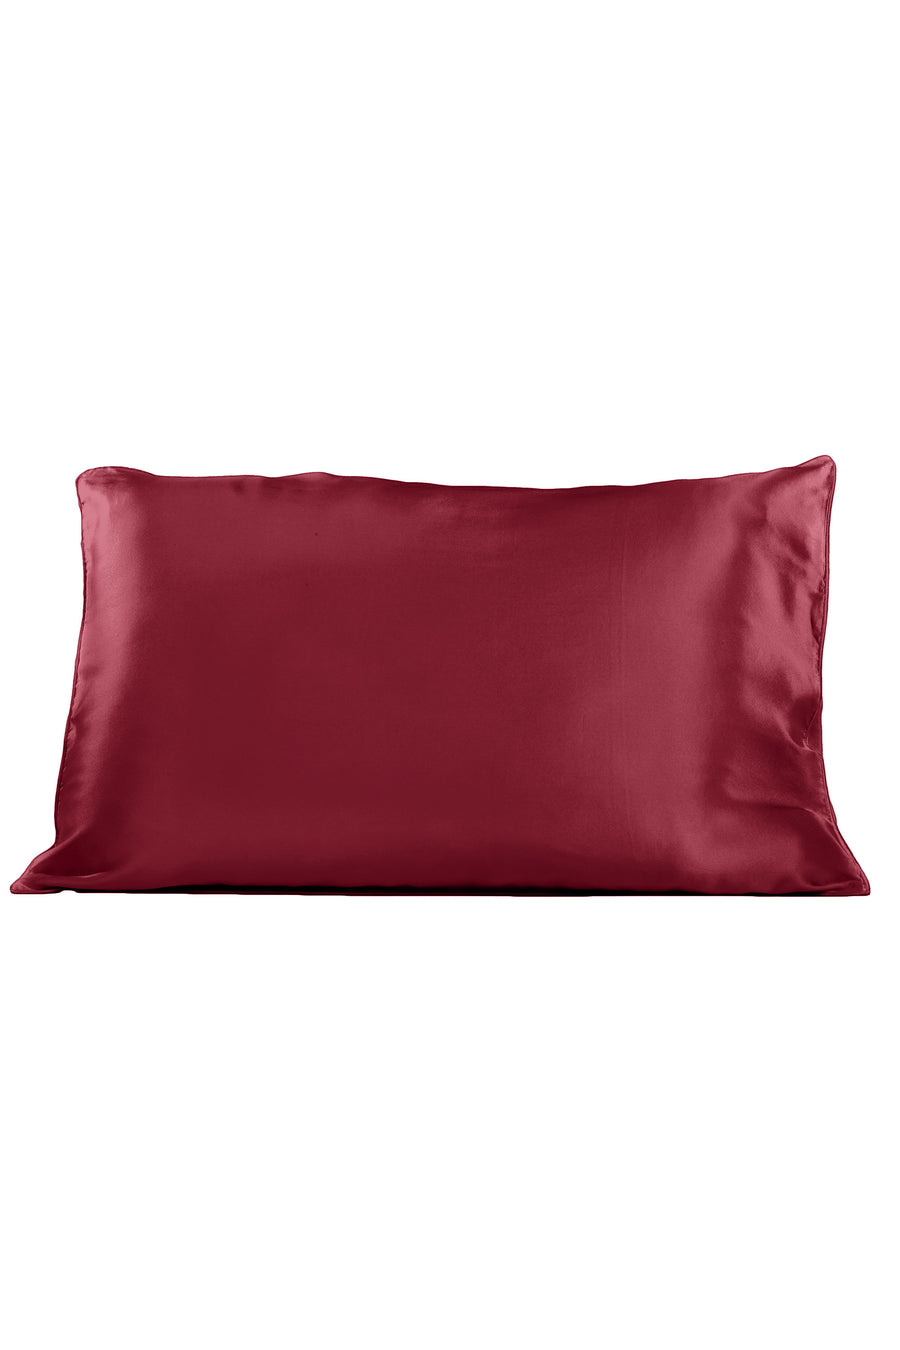 Solid Color Silk Pillowcases - testing23451234 - Pillowcases